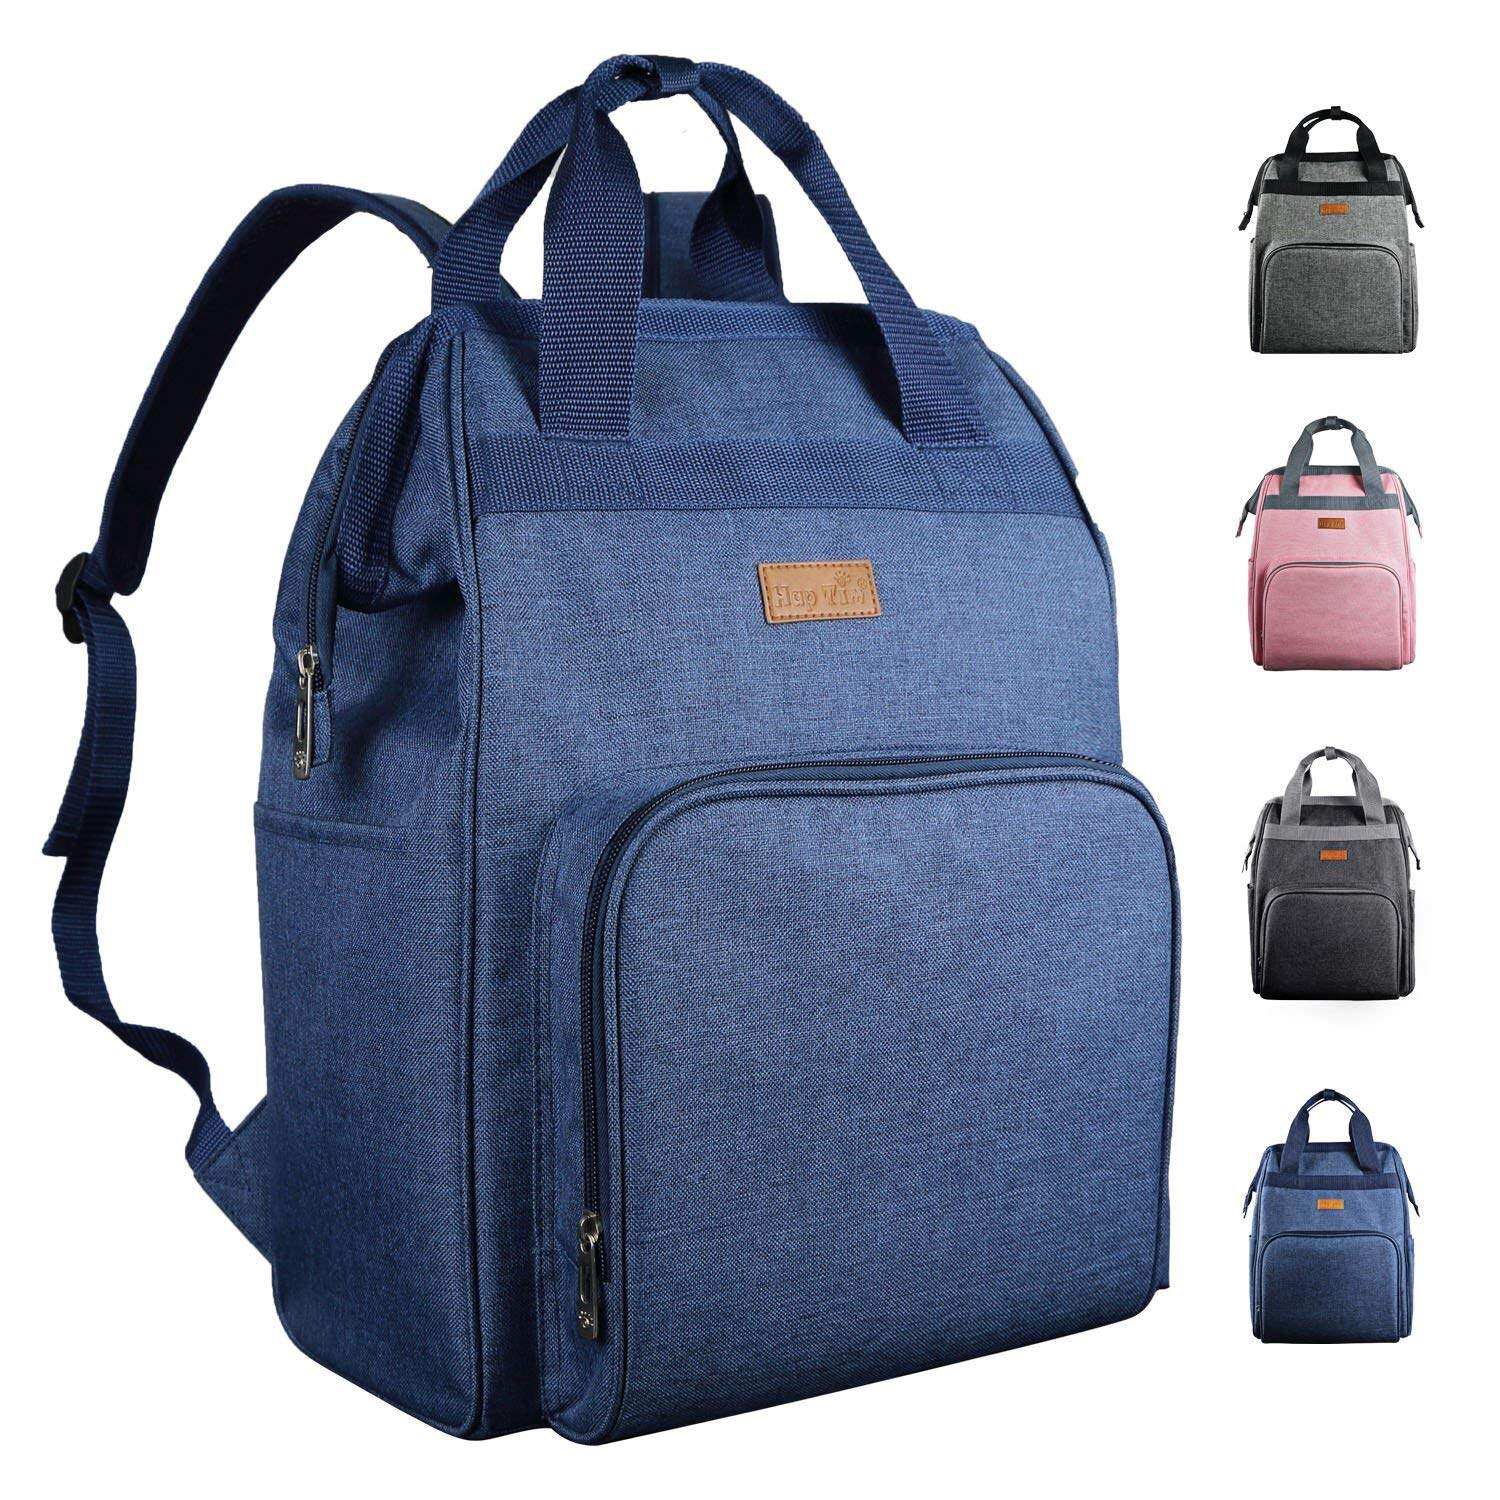 Hap Tim Diaper Bags Backpack-Smart Organizer Large Capacity Multifunction/Stylish for Women and Men(US5337BL) 0